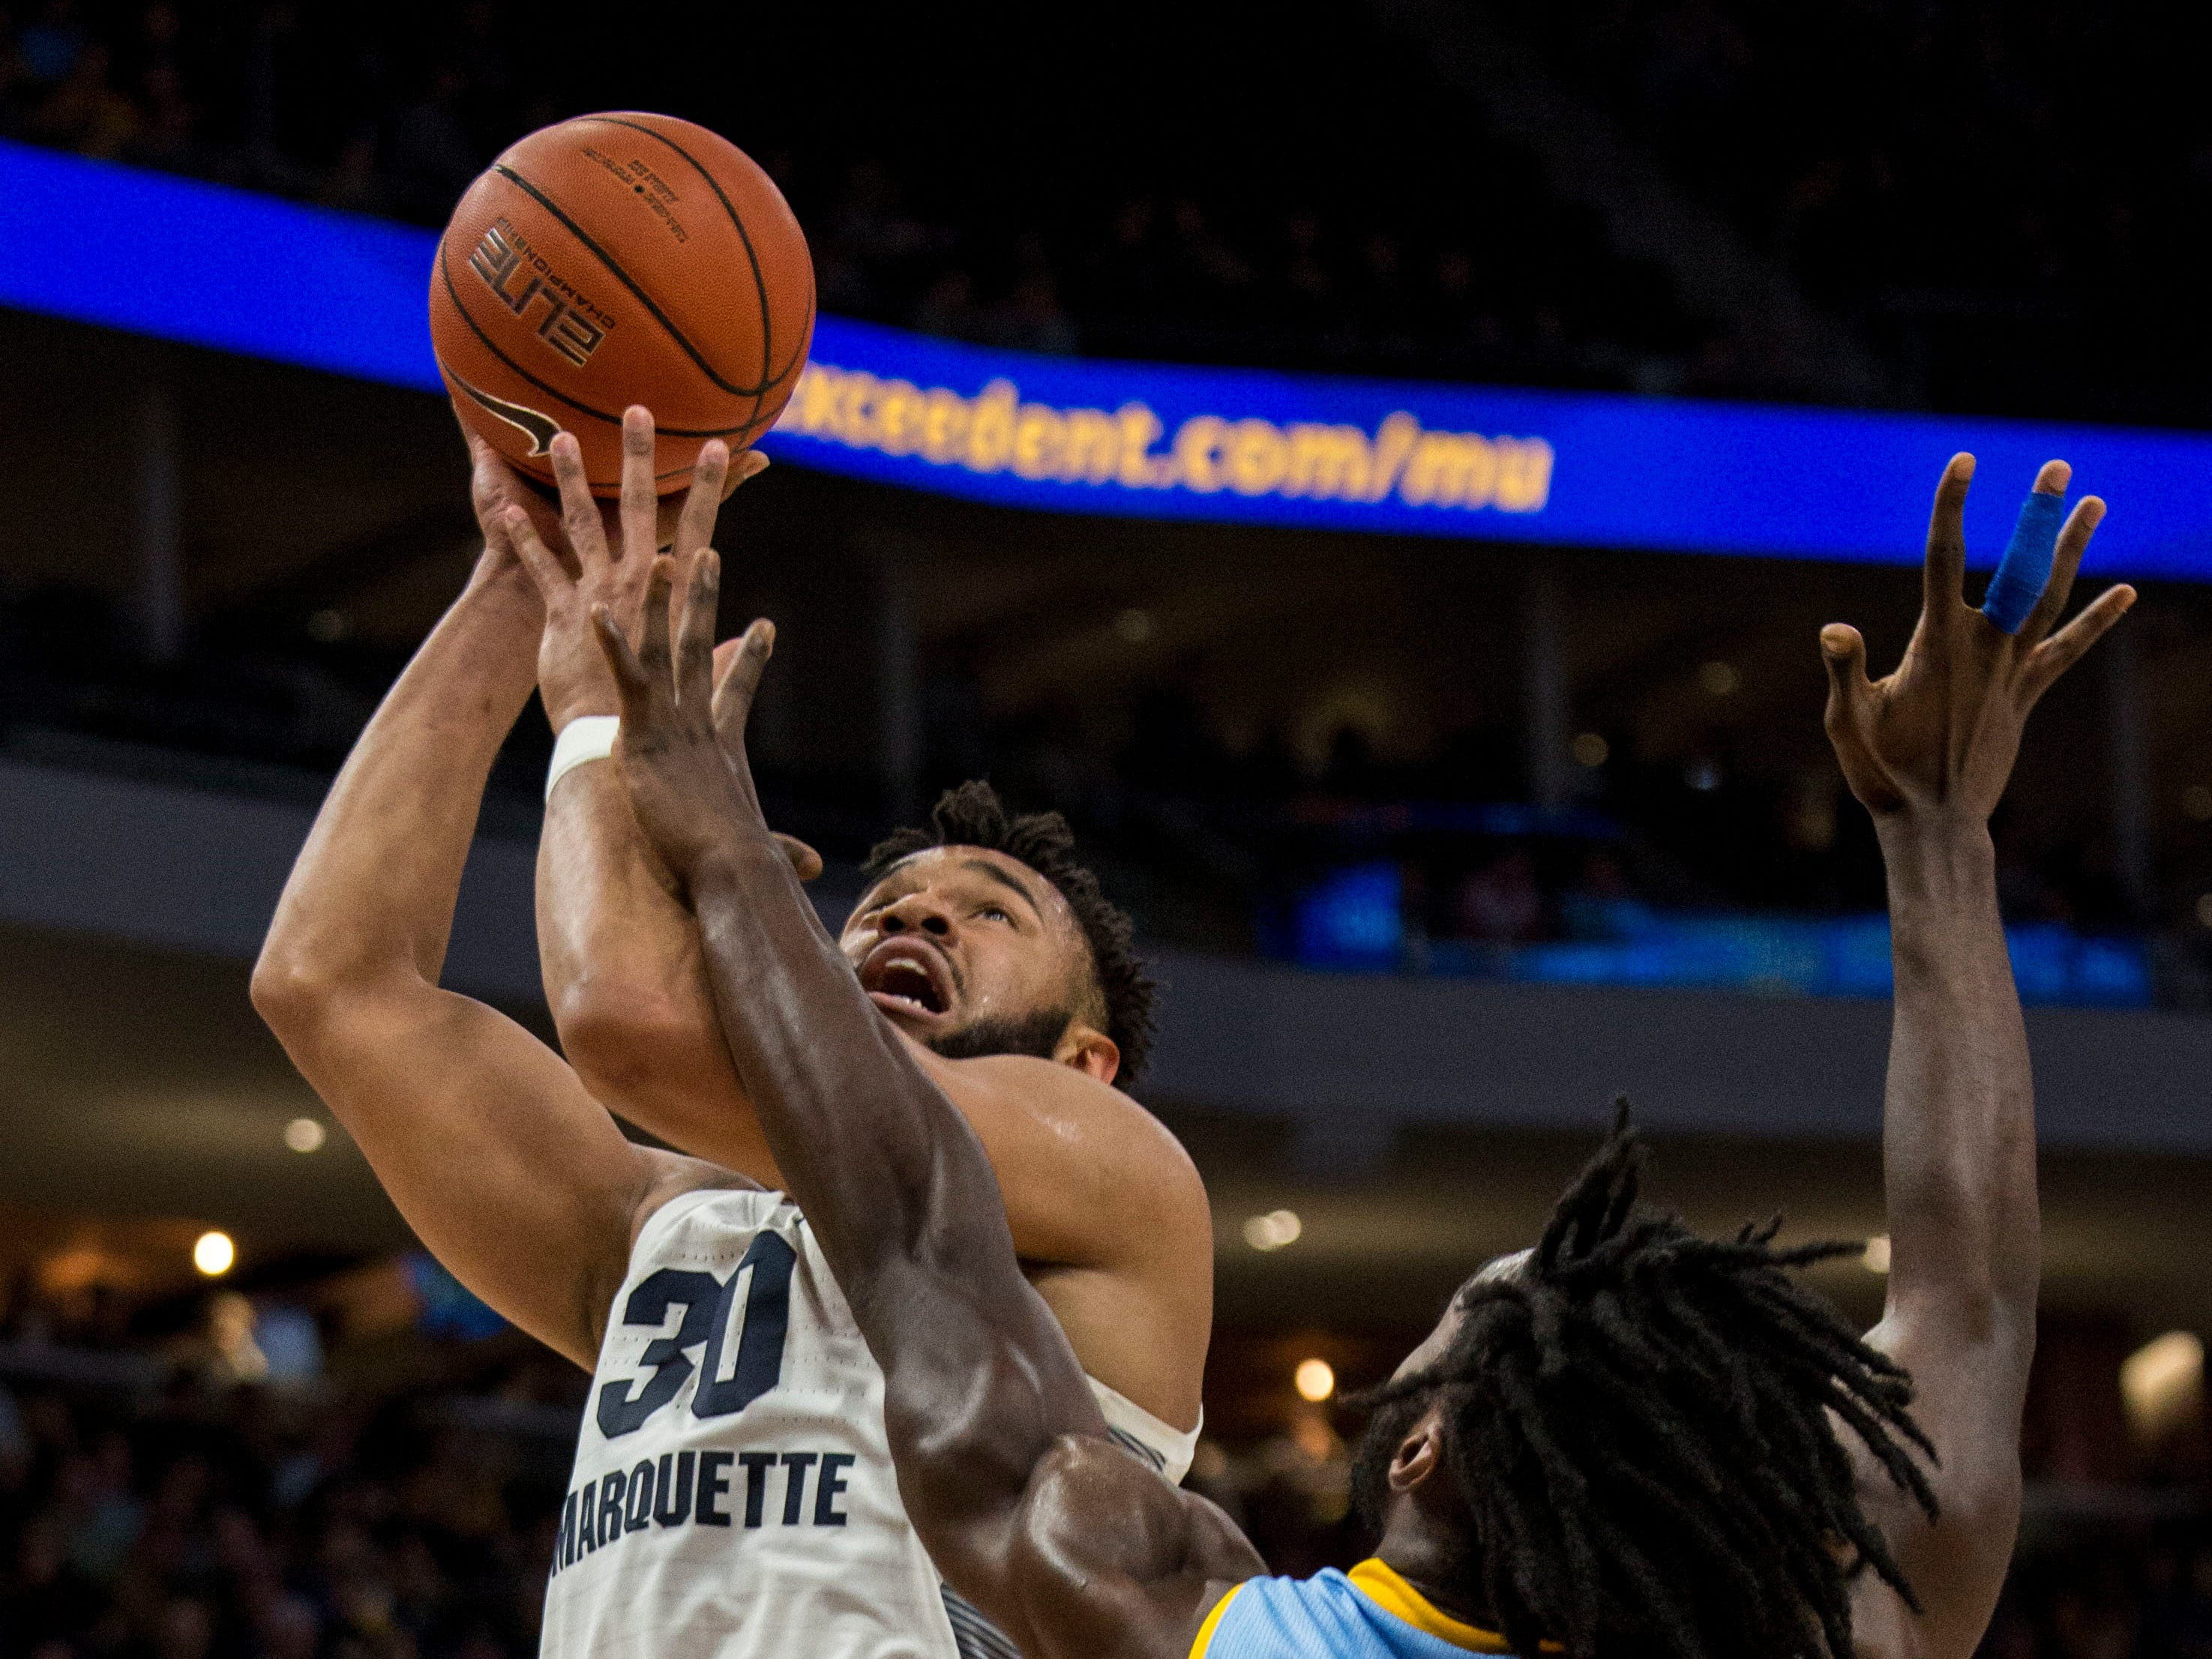 Marquette forward Ed Morrow goes up for a shot against Southern forward Bryan Assie on Friday night.